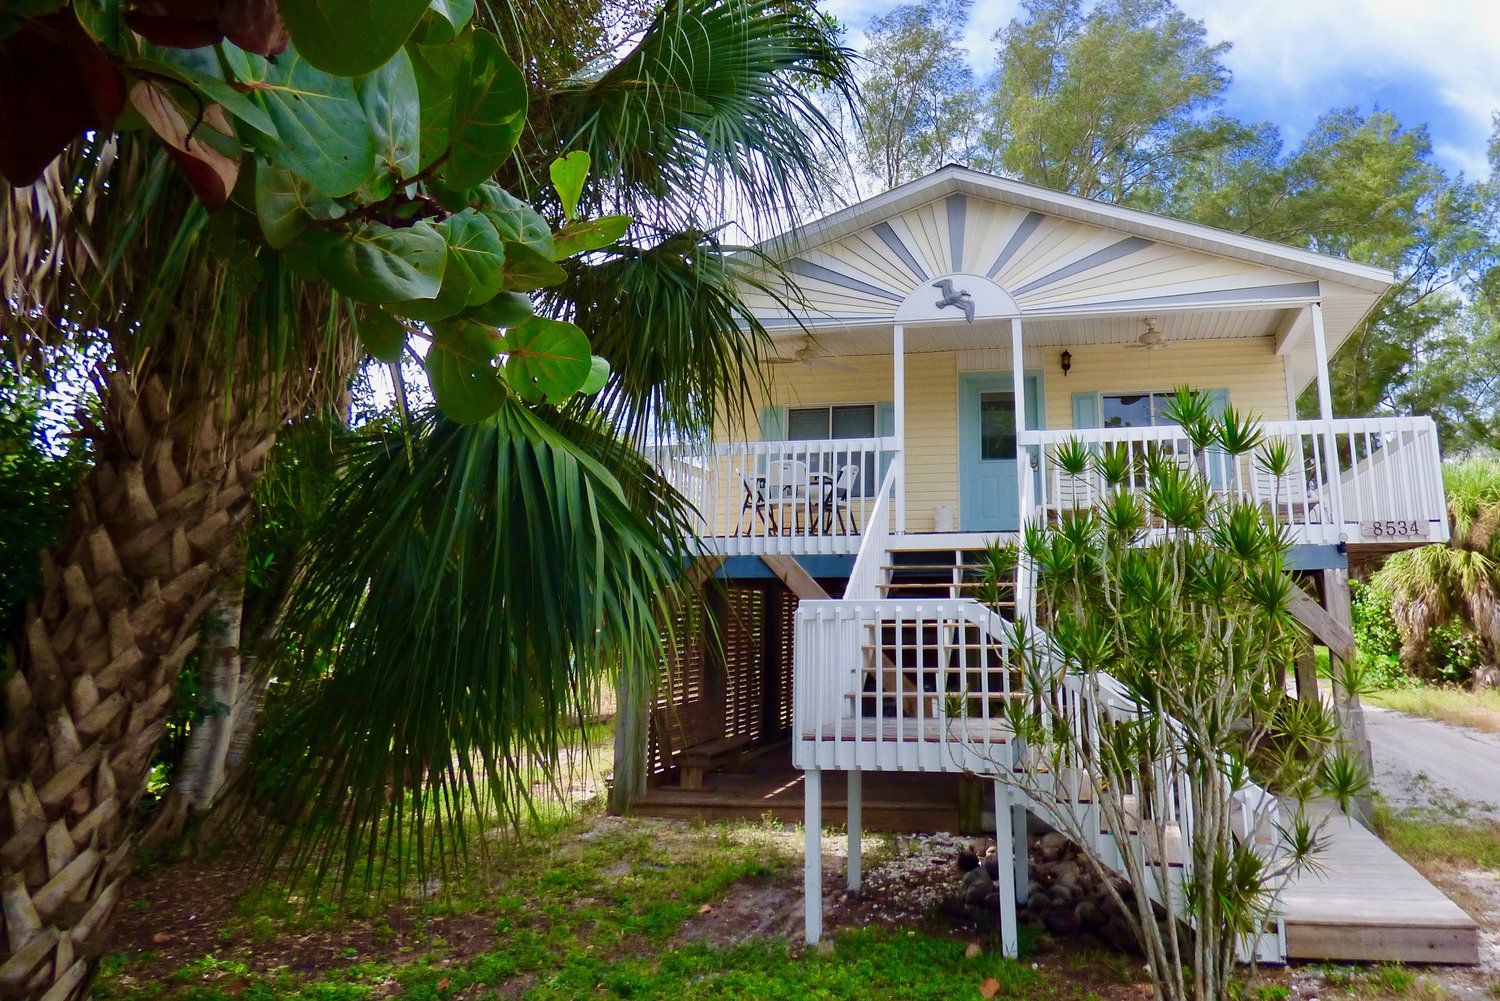 Island Sunrise - 3-Bedroom, 2 BathQUEEN, QUEEN, QUEEN WITH BUNK BED, SLEEPS 7